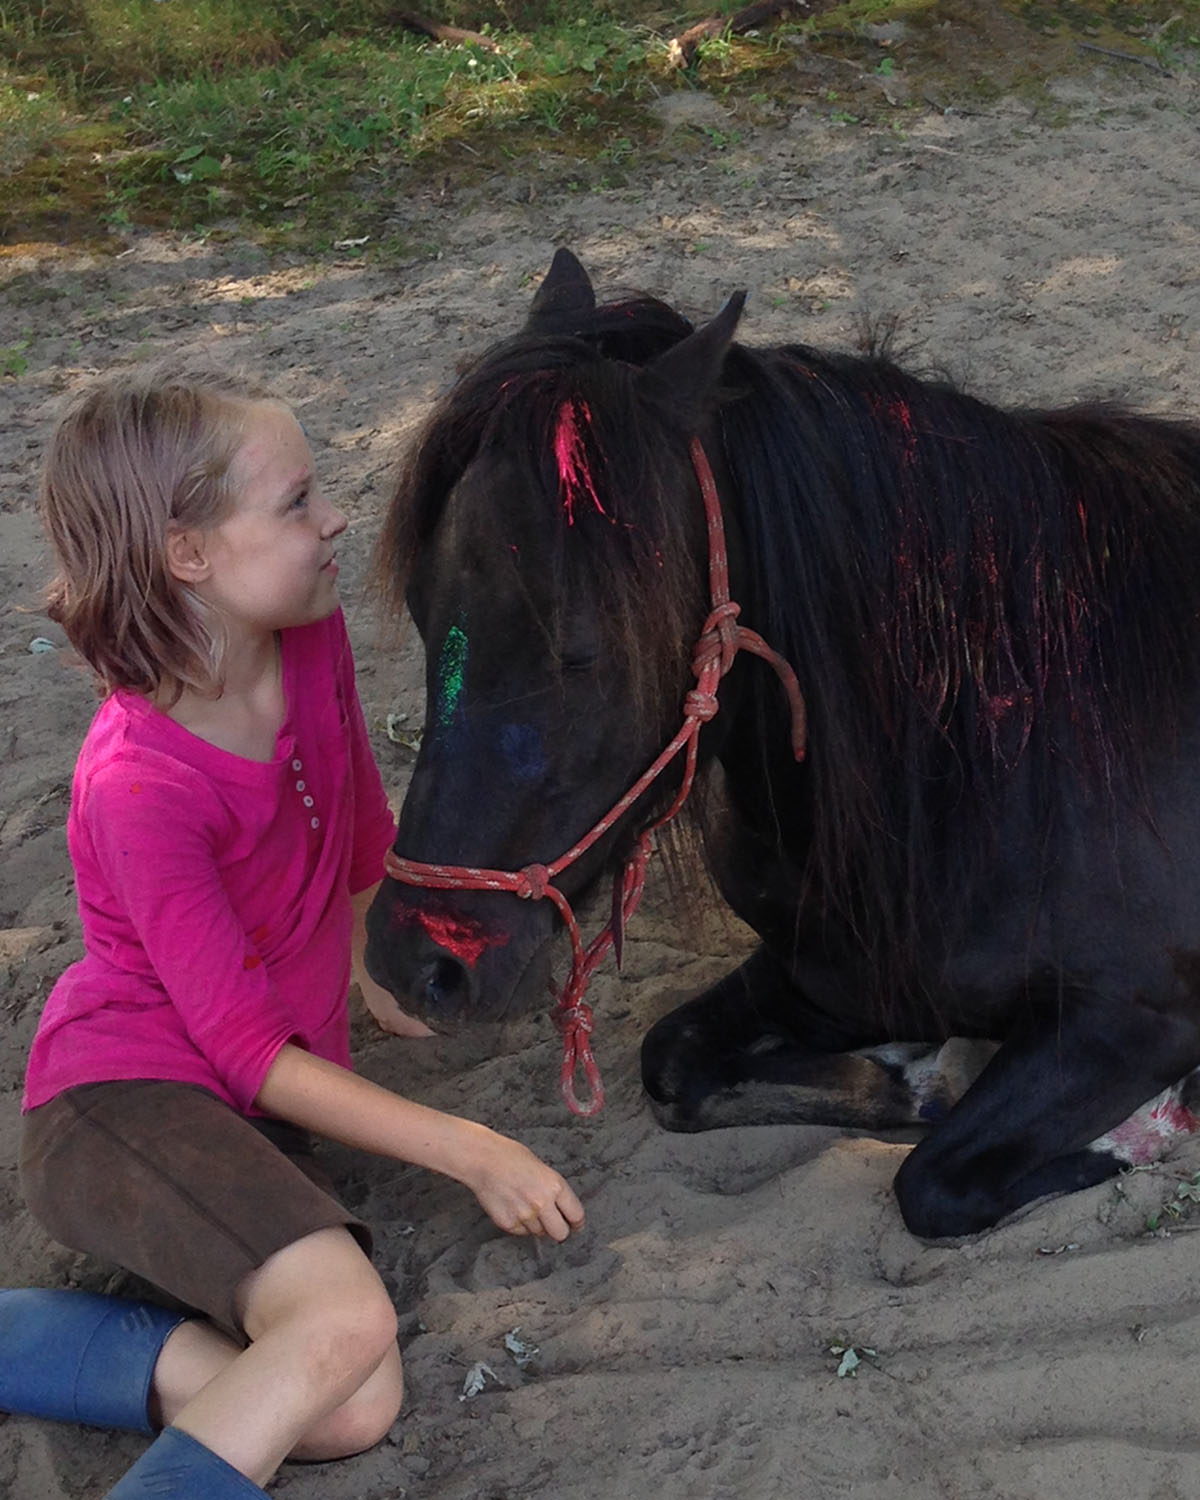 girl.sitting.horse.connection.jpg